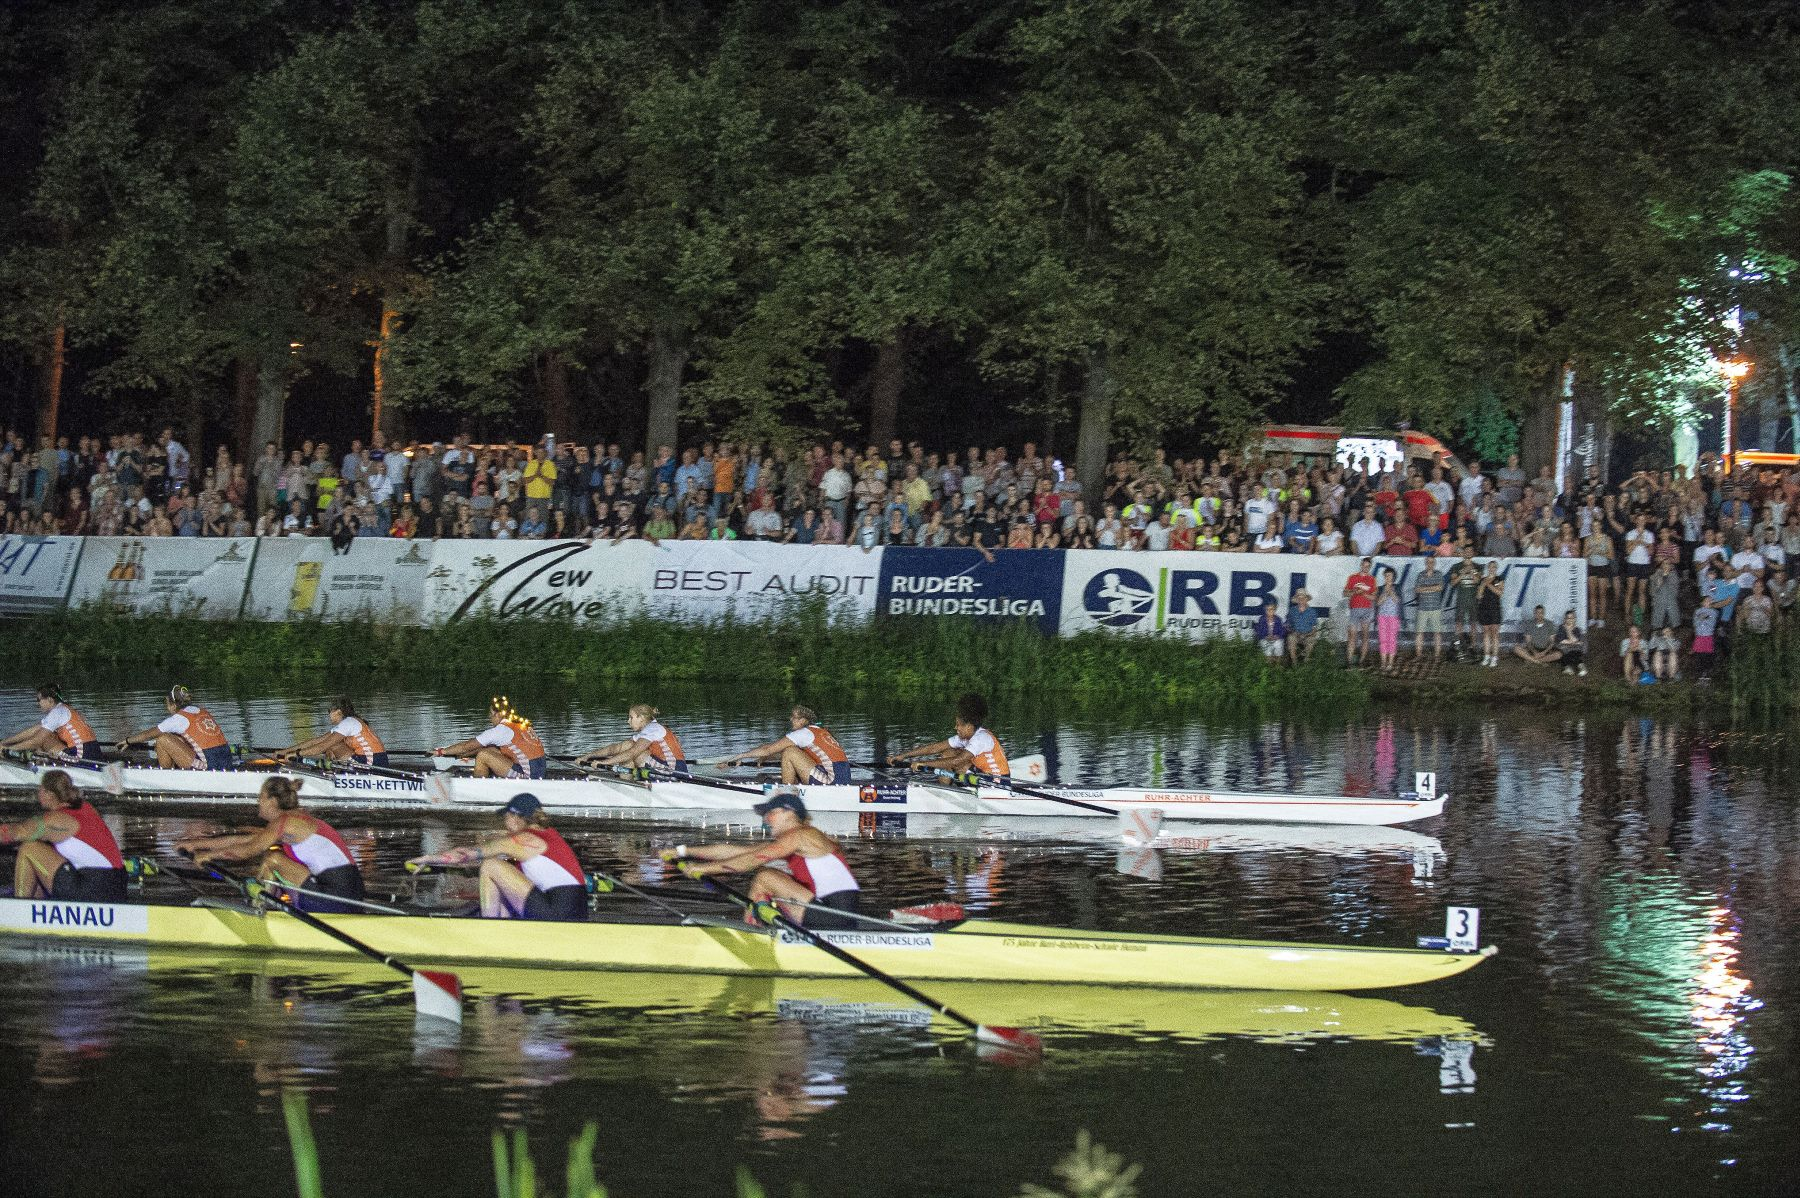 20180818_Frauen-Finale_Hanau-Kettwig_gross.jpg